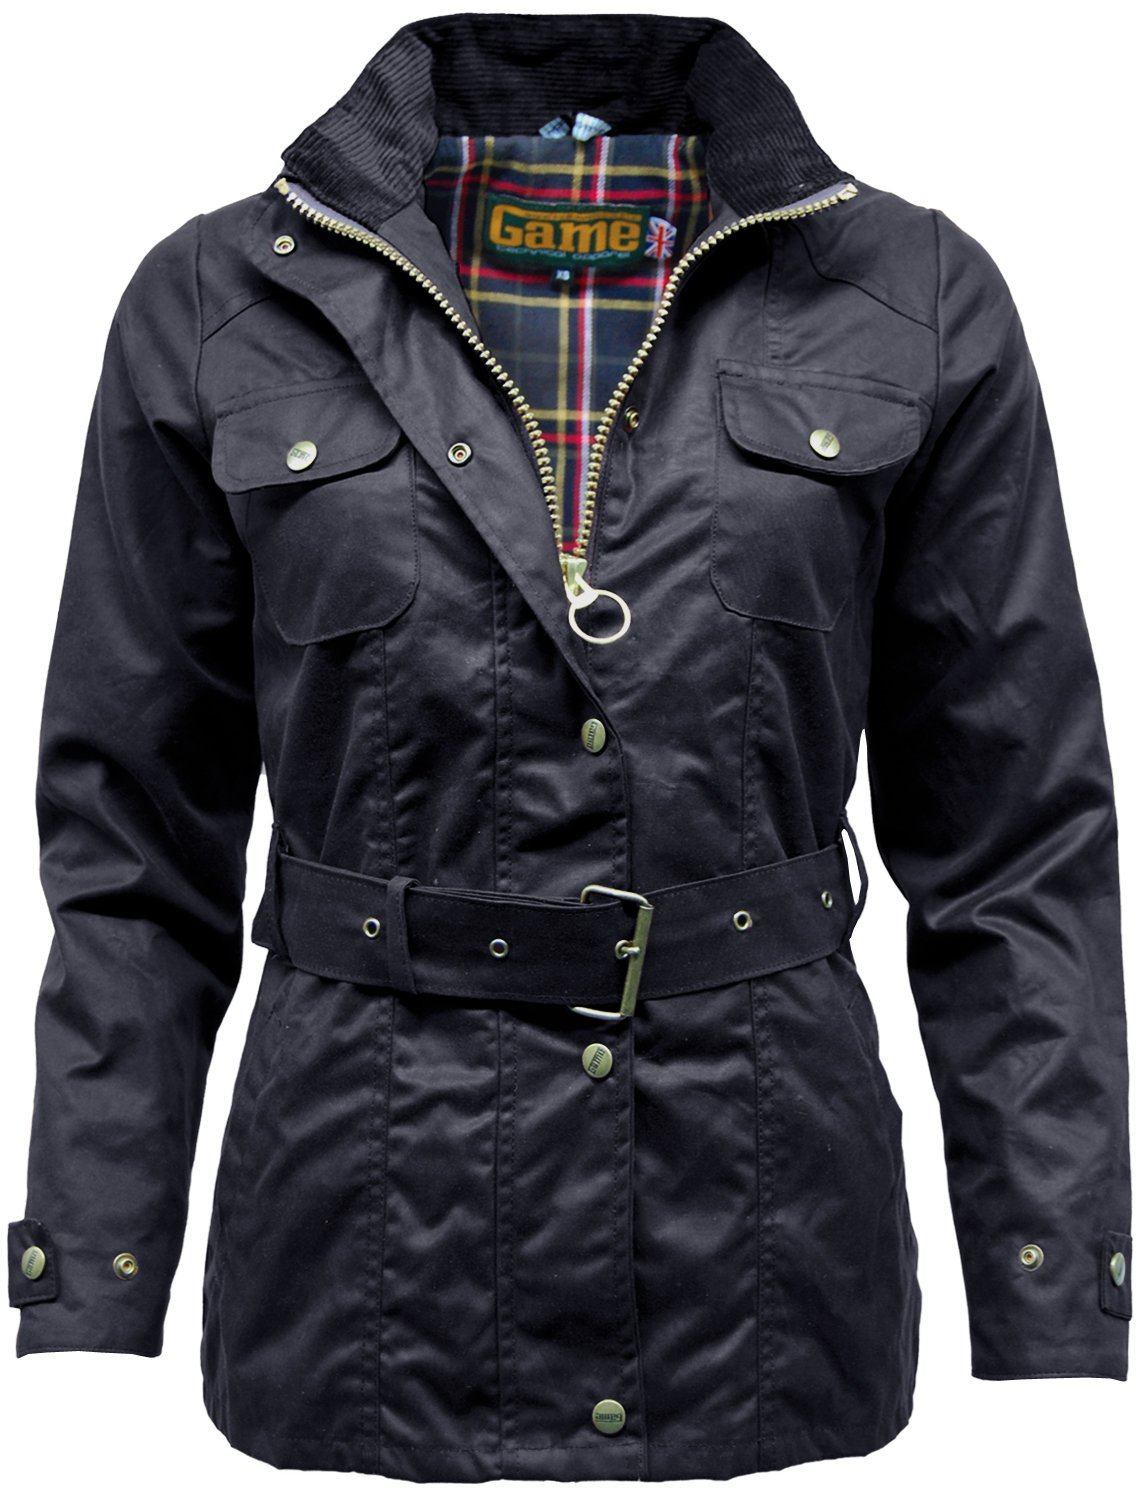 Game Womens Blaze Antique Waxed Cotton Jacket With Belt